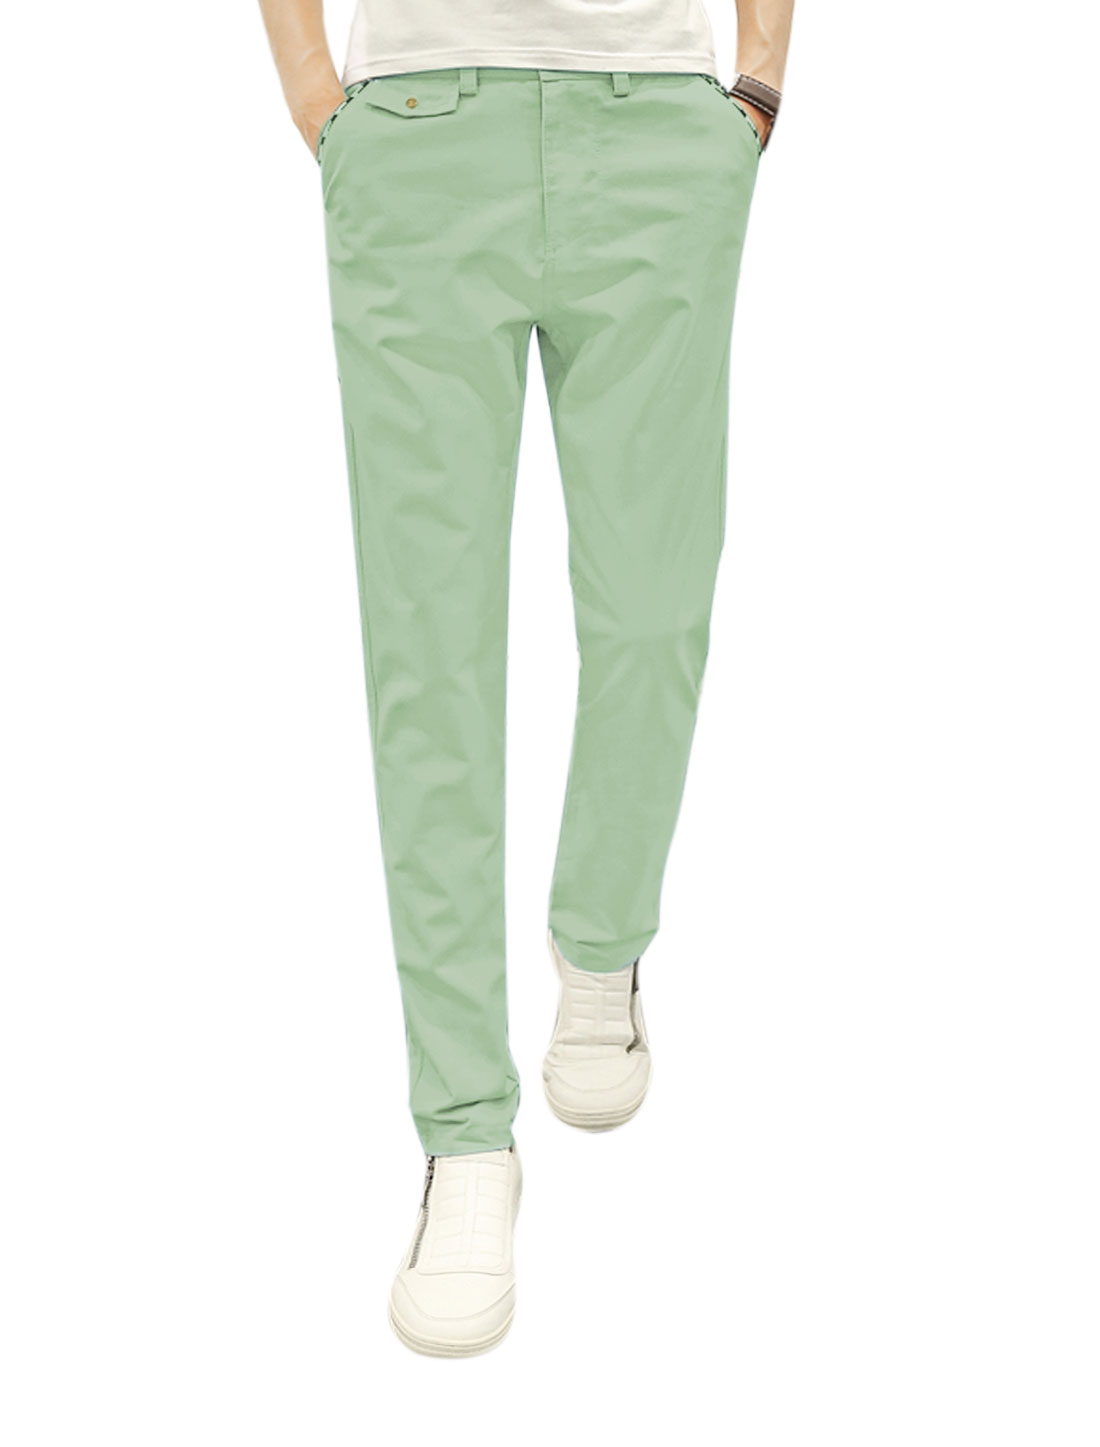 Men Mid Rise Zip Fly Four Pockets Tapered Buttoned Trousers Green W30